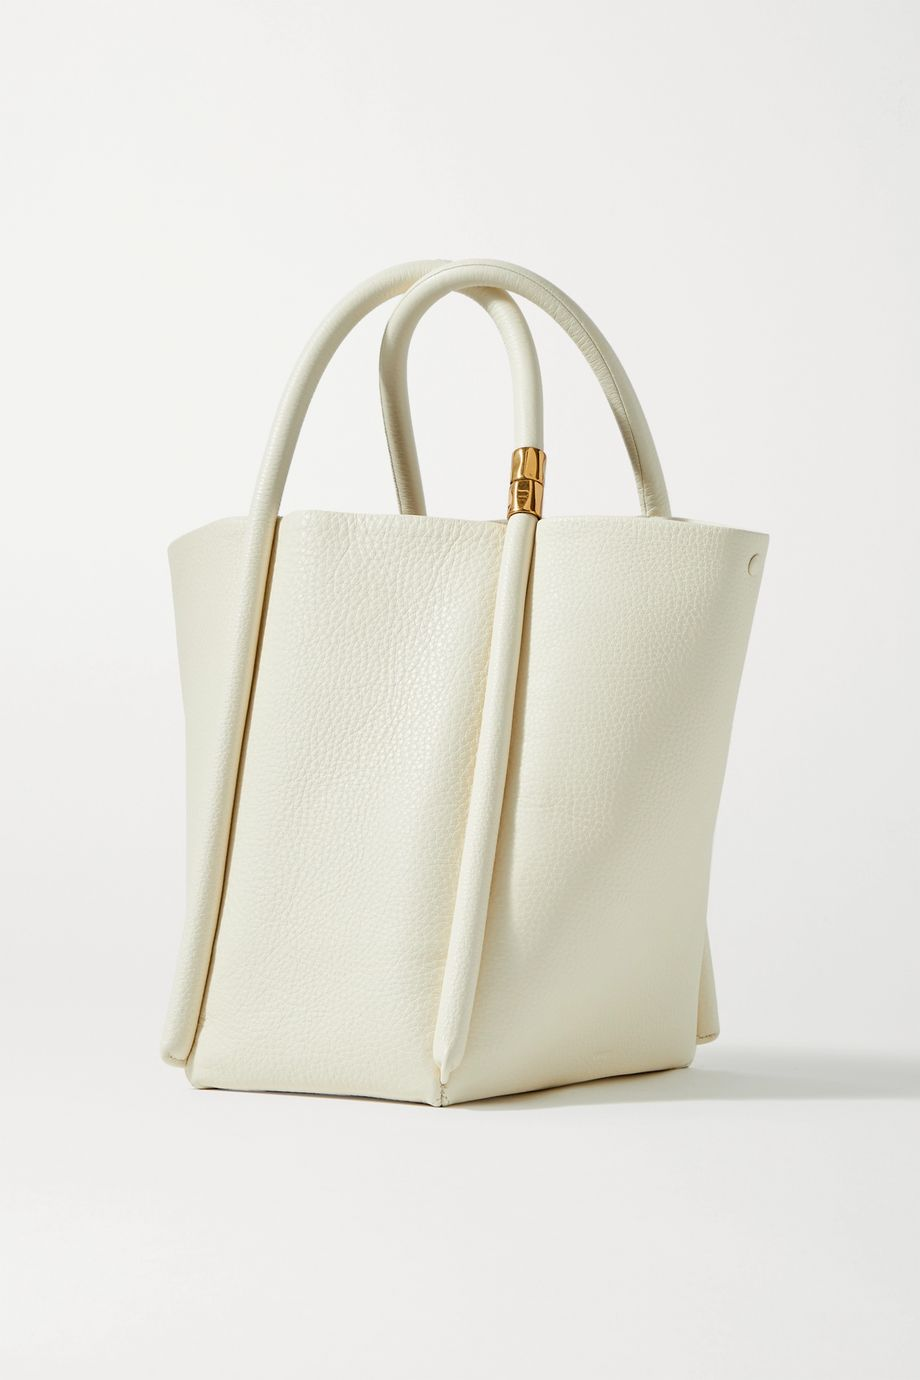 BOYY Lotus 25 textured-leather tote